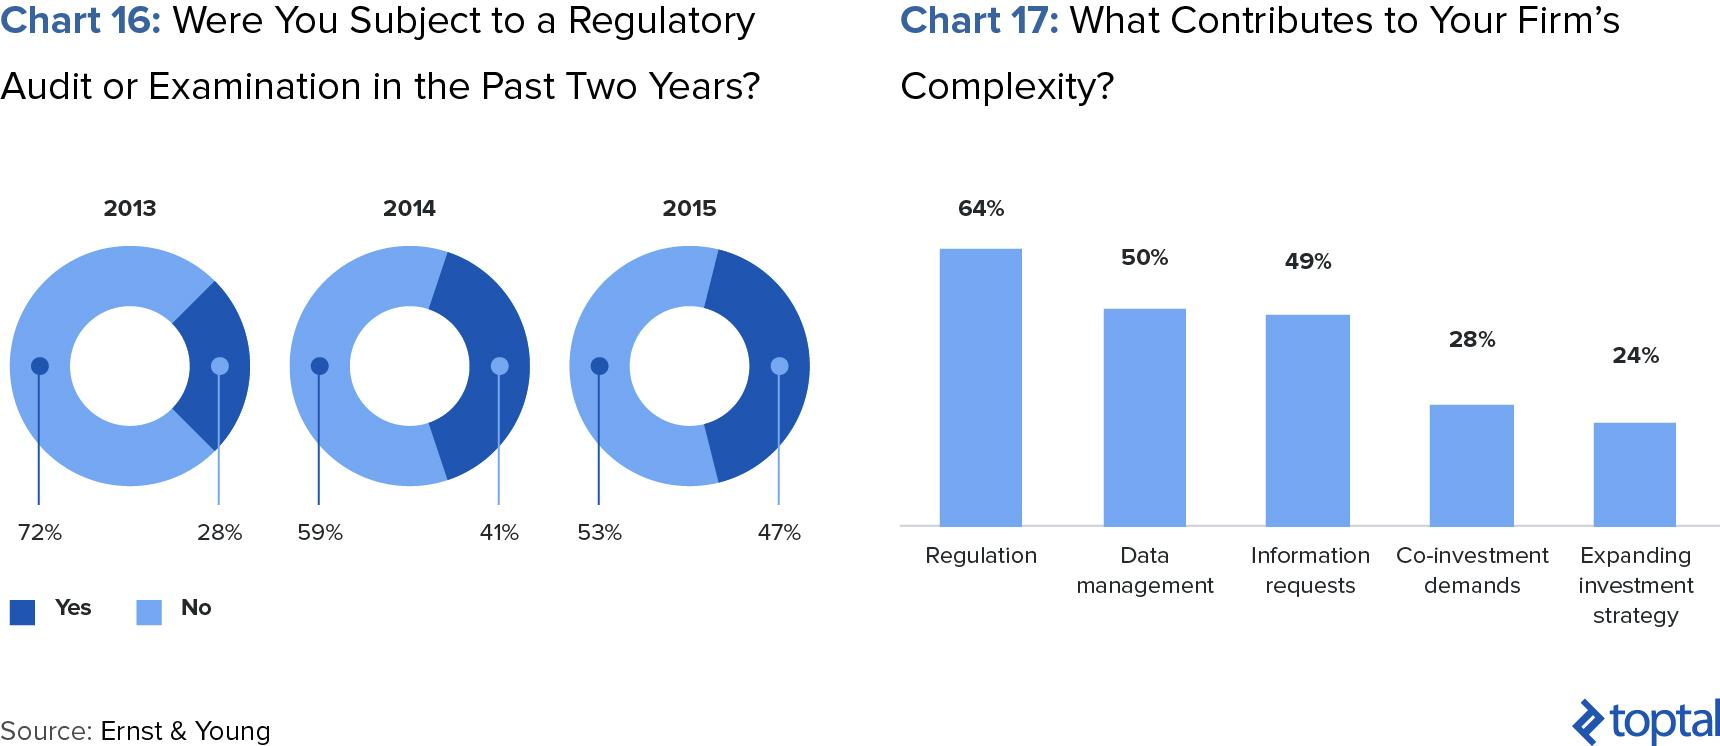 Chart 16: Were You Subject to a Regulatory Audit or Examination in the Past Two Years?; and Chart 17: What Contributes to Your Firm's Complexity?